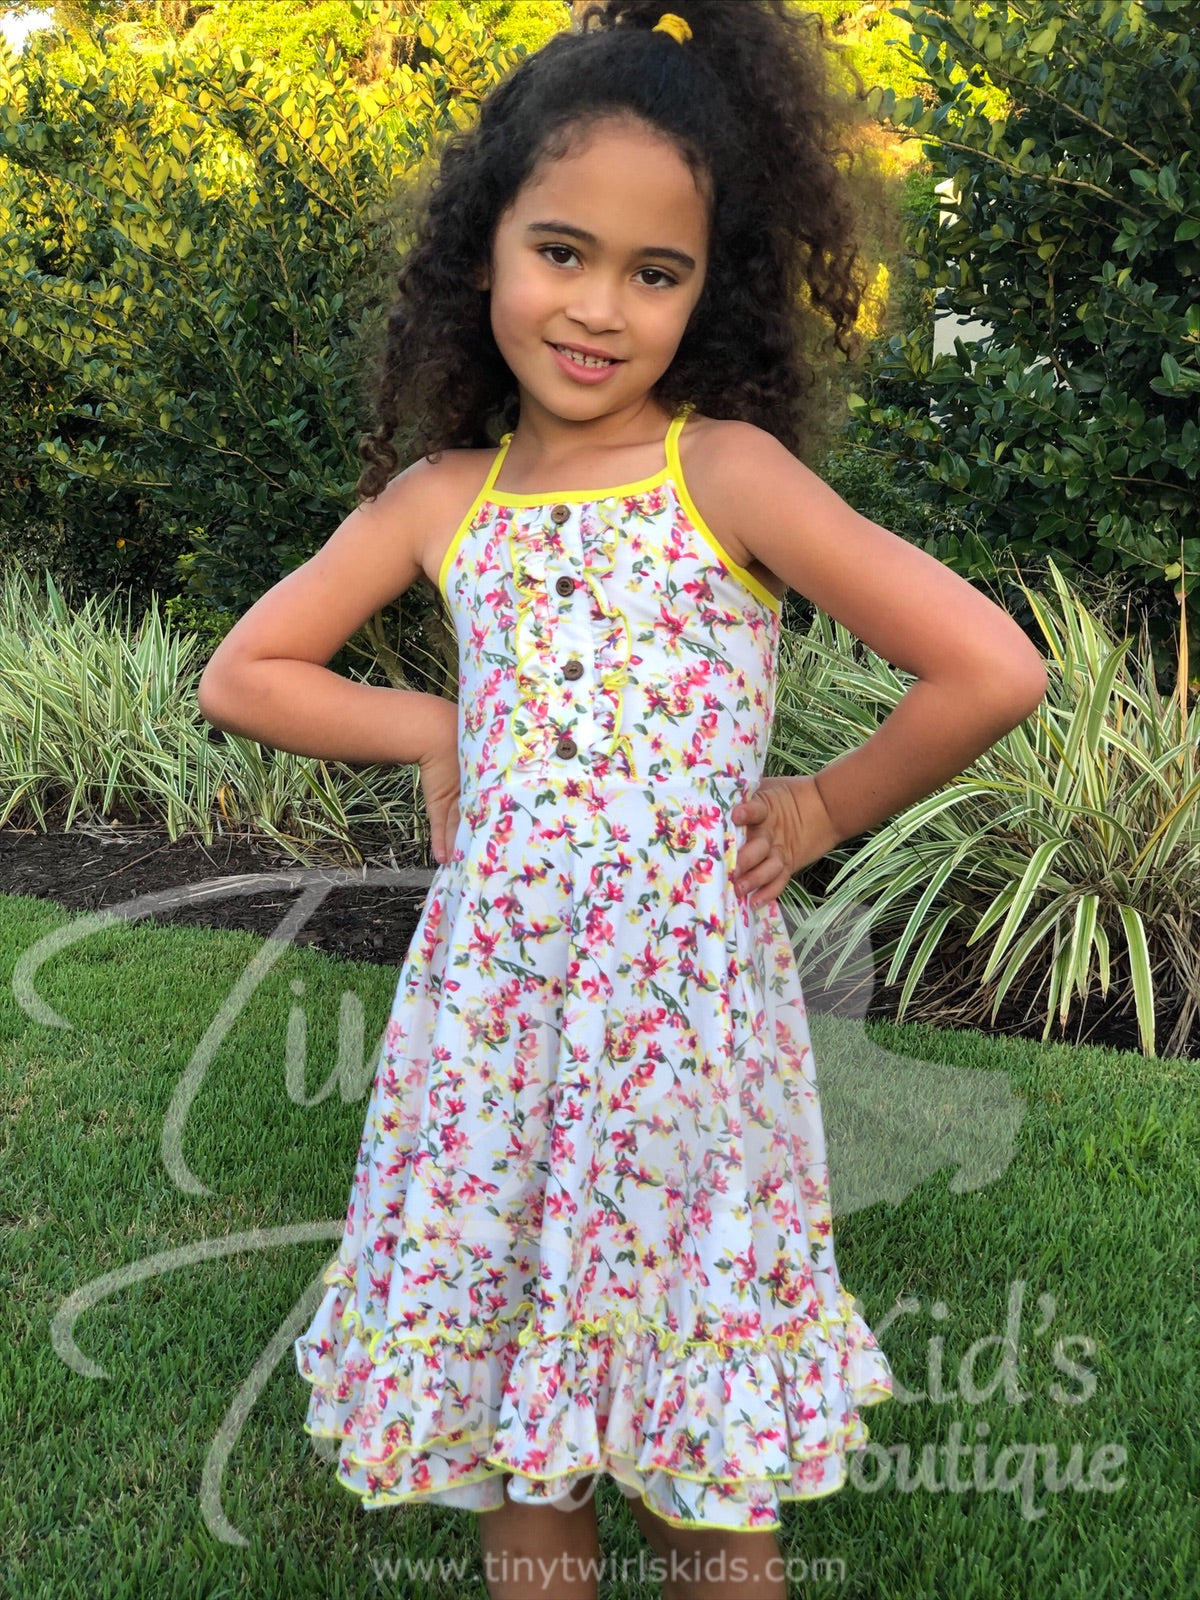 White and Yellow Double Ruffle Twirl Dress - In-Stock - Tiny Twirls Kids Boutique